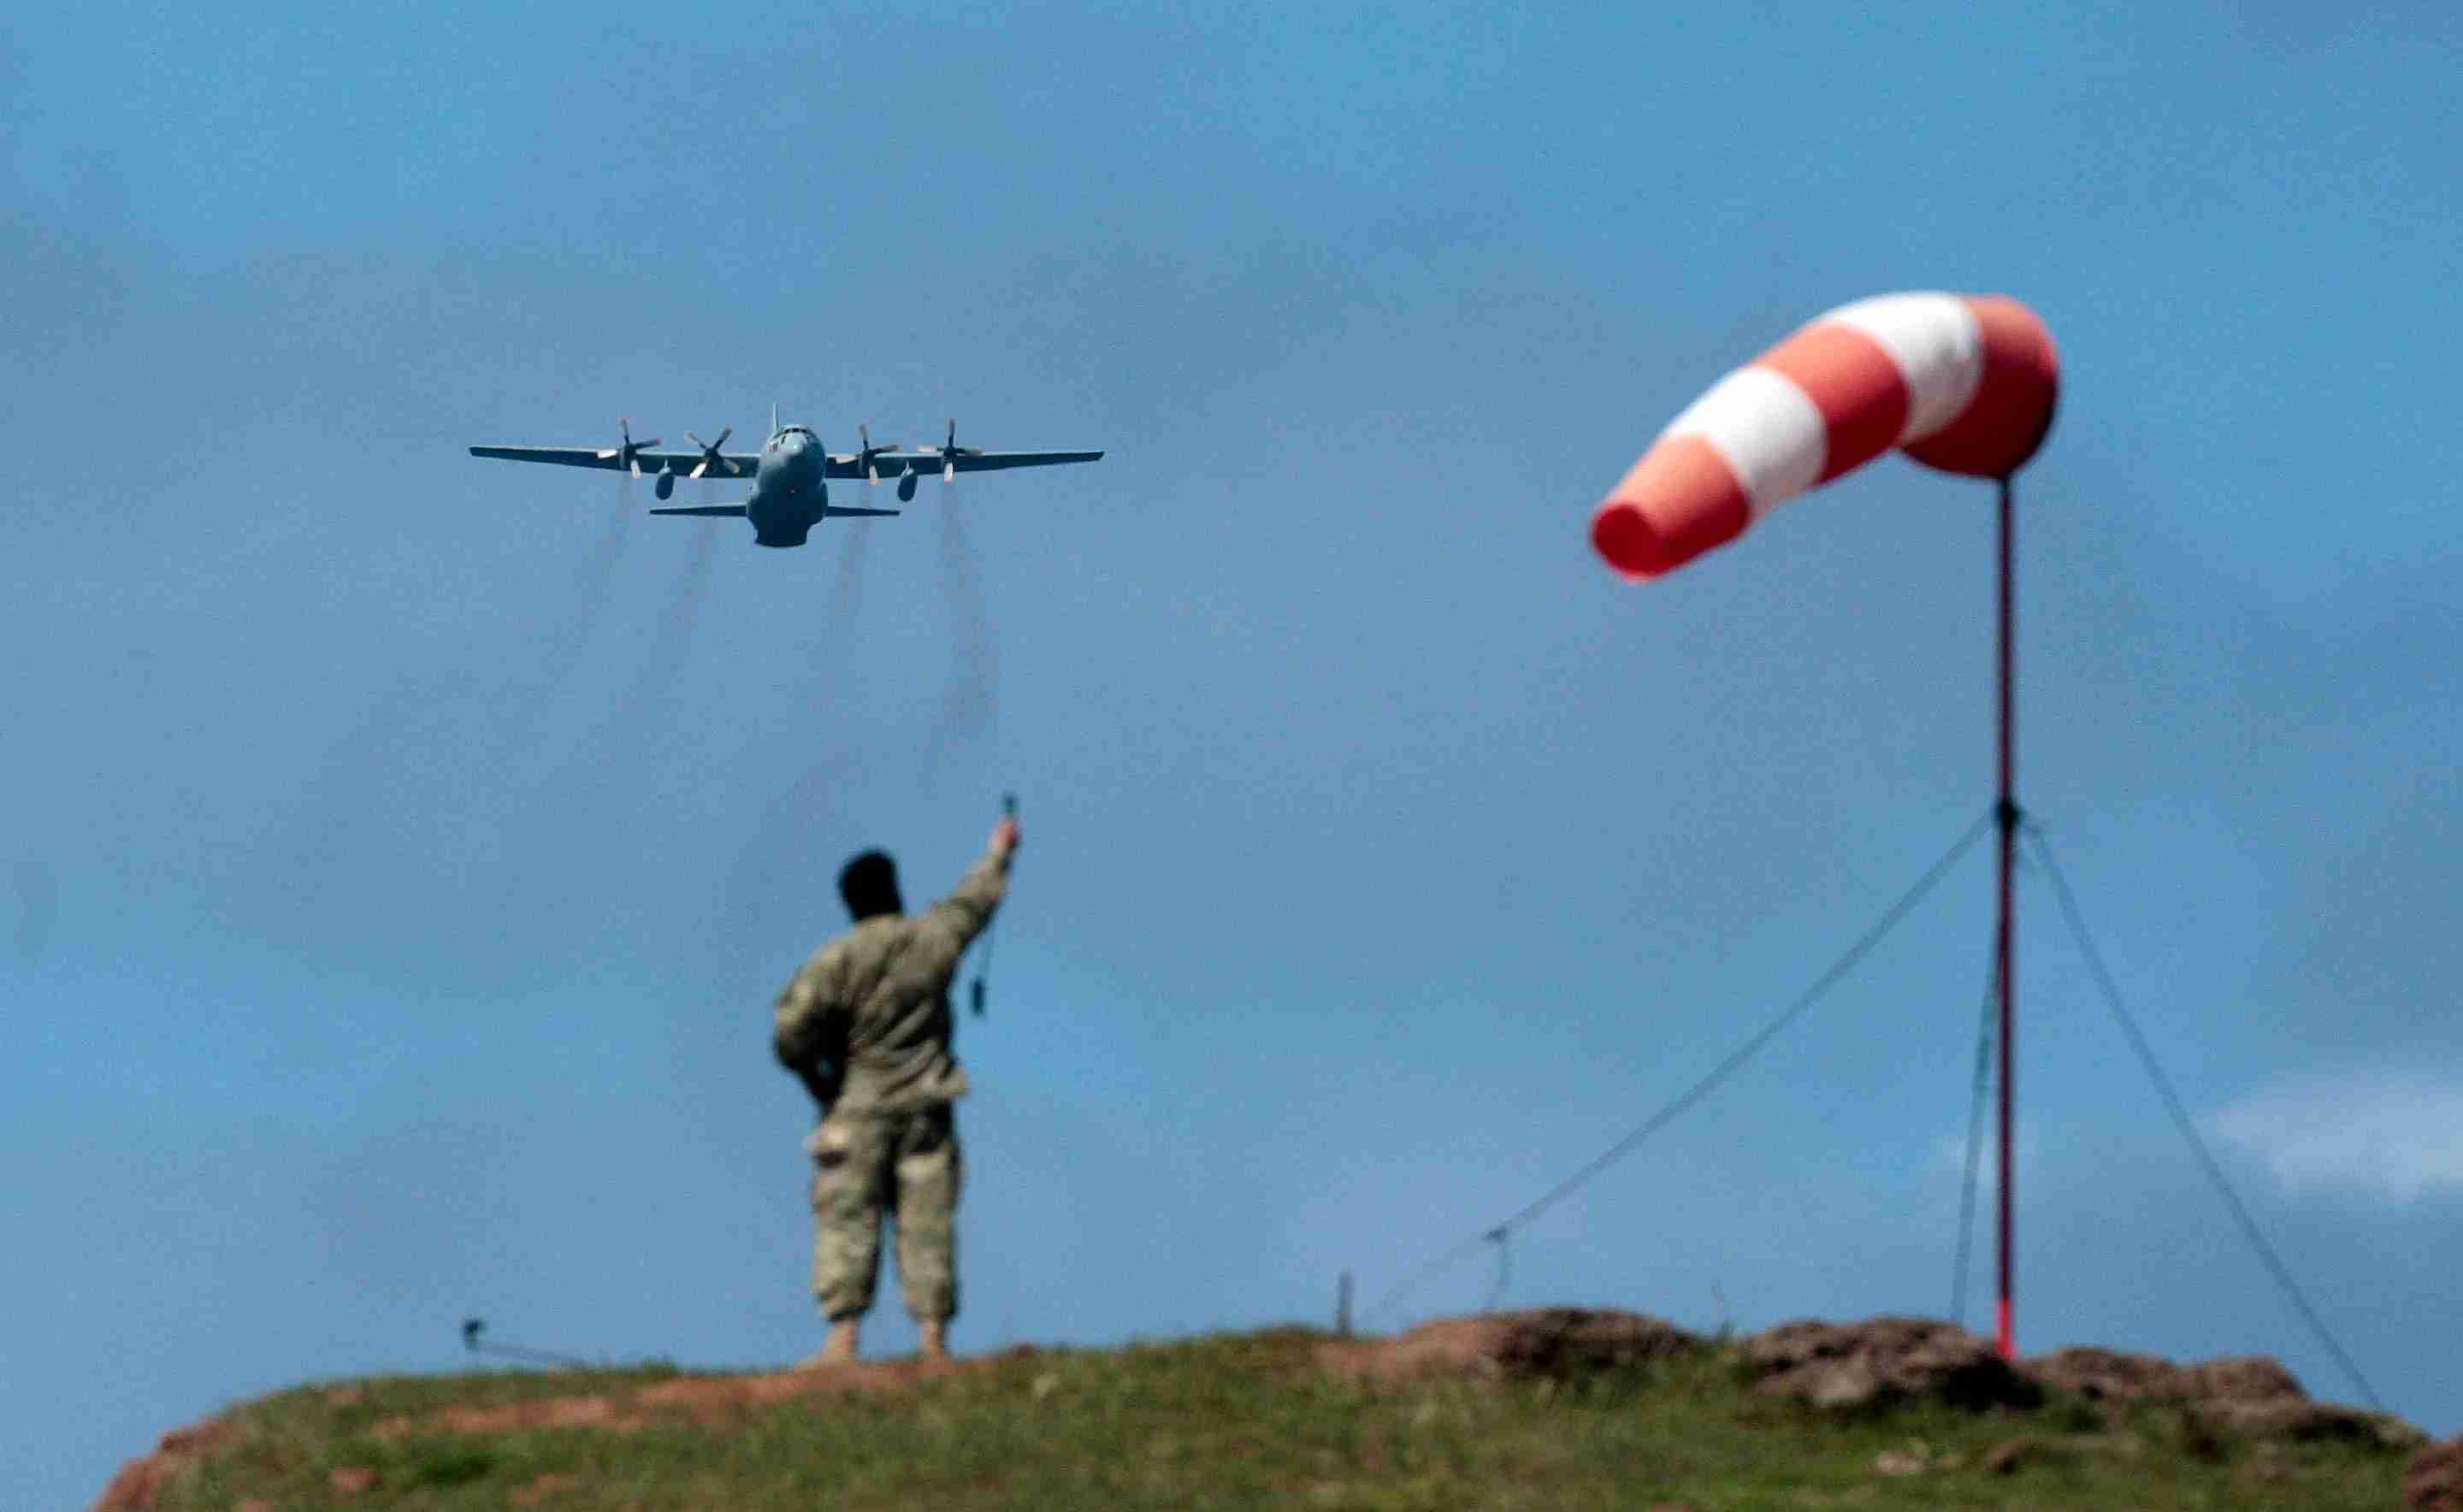 A Chilean air force soldier takes the wind speed, before a C130 Hercules aircraft with supplies and support material for the search and rescue operation of the plane that crashed on Friday droppes its load on parachute, at the Juan Fernandez (Robinson Crusoe) island airstrip on 2 September 4, 2011. Authorities resumed a search Sunday for bodies of those missing in the crash of a Chilean air force plane that is believed to have killed all 21 people aboard during an attempt to land on a remote Pacific island. Only four bodies have been recovered since the CASA 212 turbo-prop plane went down late Friday off Robinson Crusoe island, but Chilean officials on Saturday said there was no hope of survivors as all aboard would have been killed on impact. LUIS HIDALGO/AFP/Getty Images)